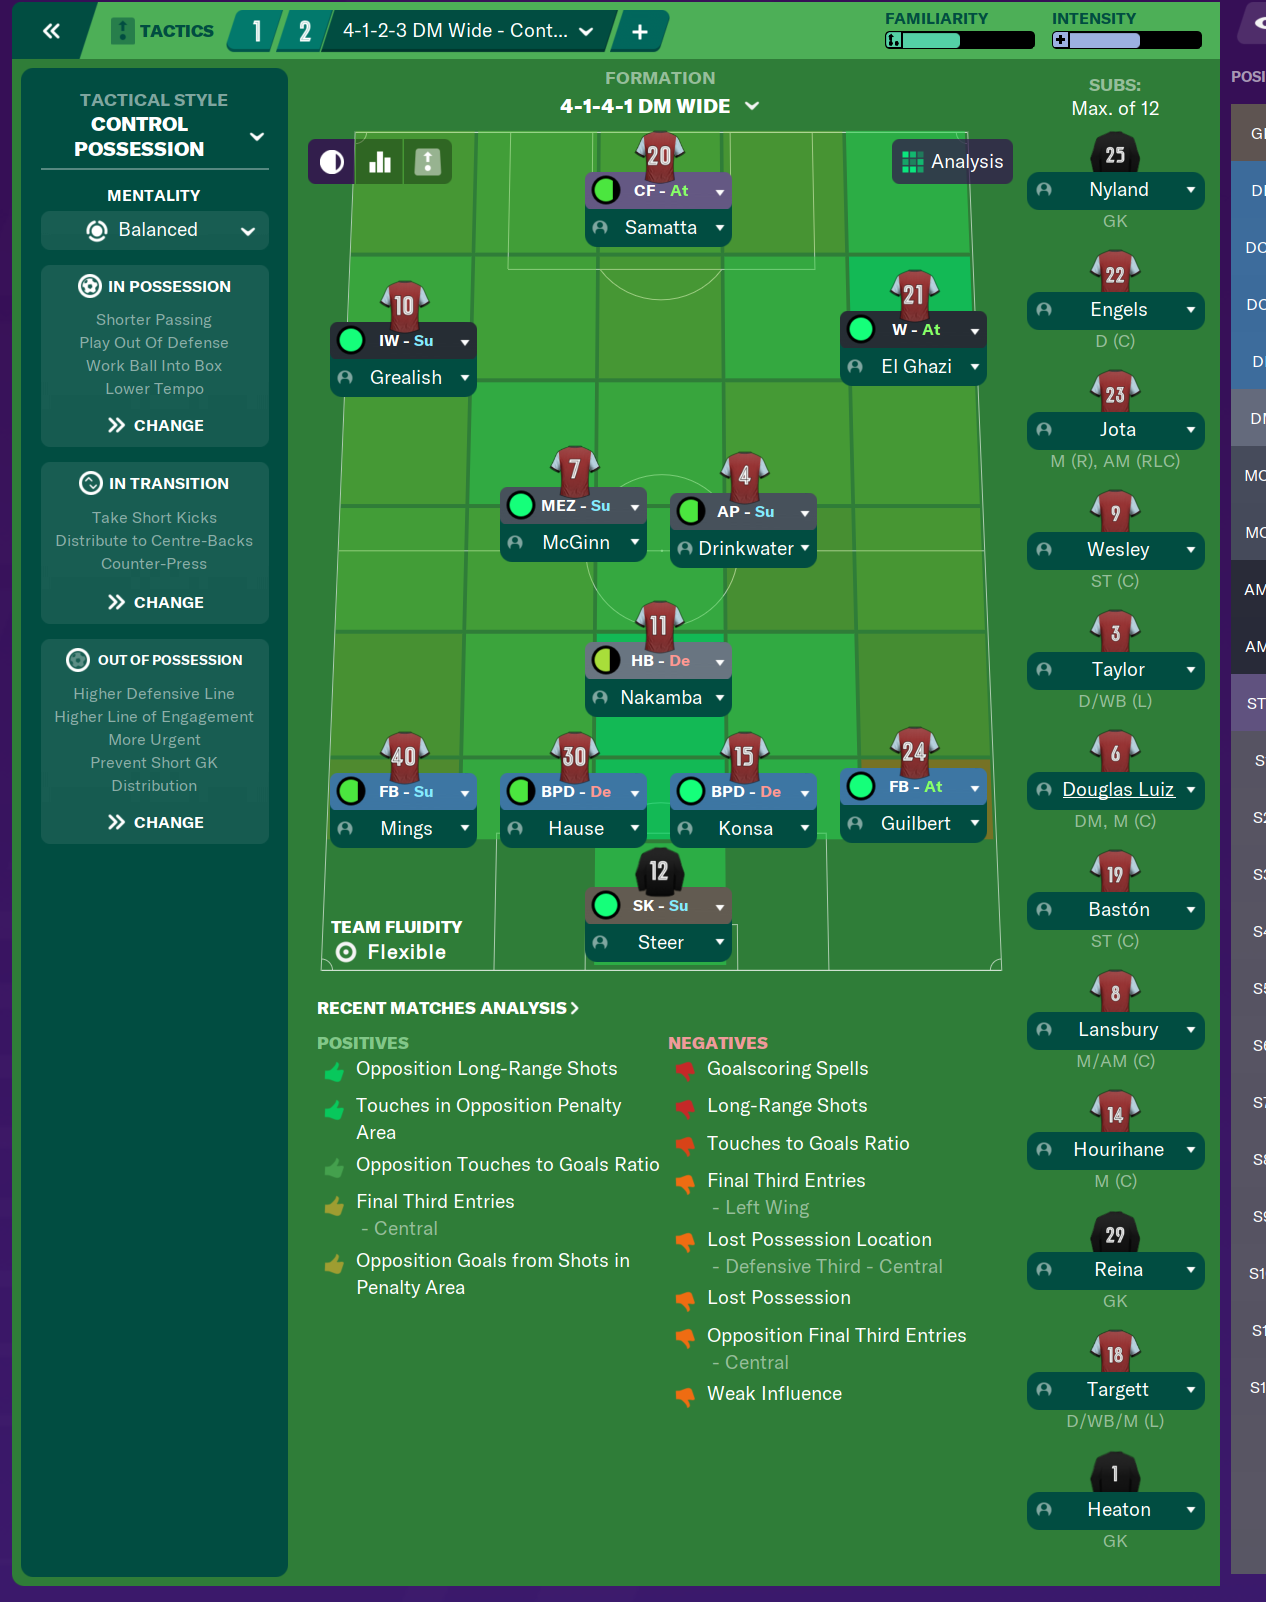 FM 2020 Tactics Guide - Style #1: Control Possession